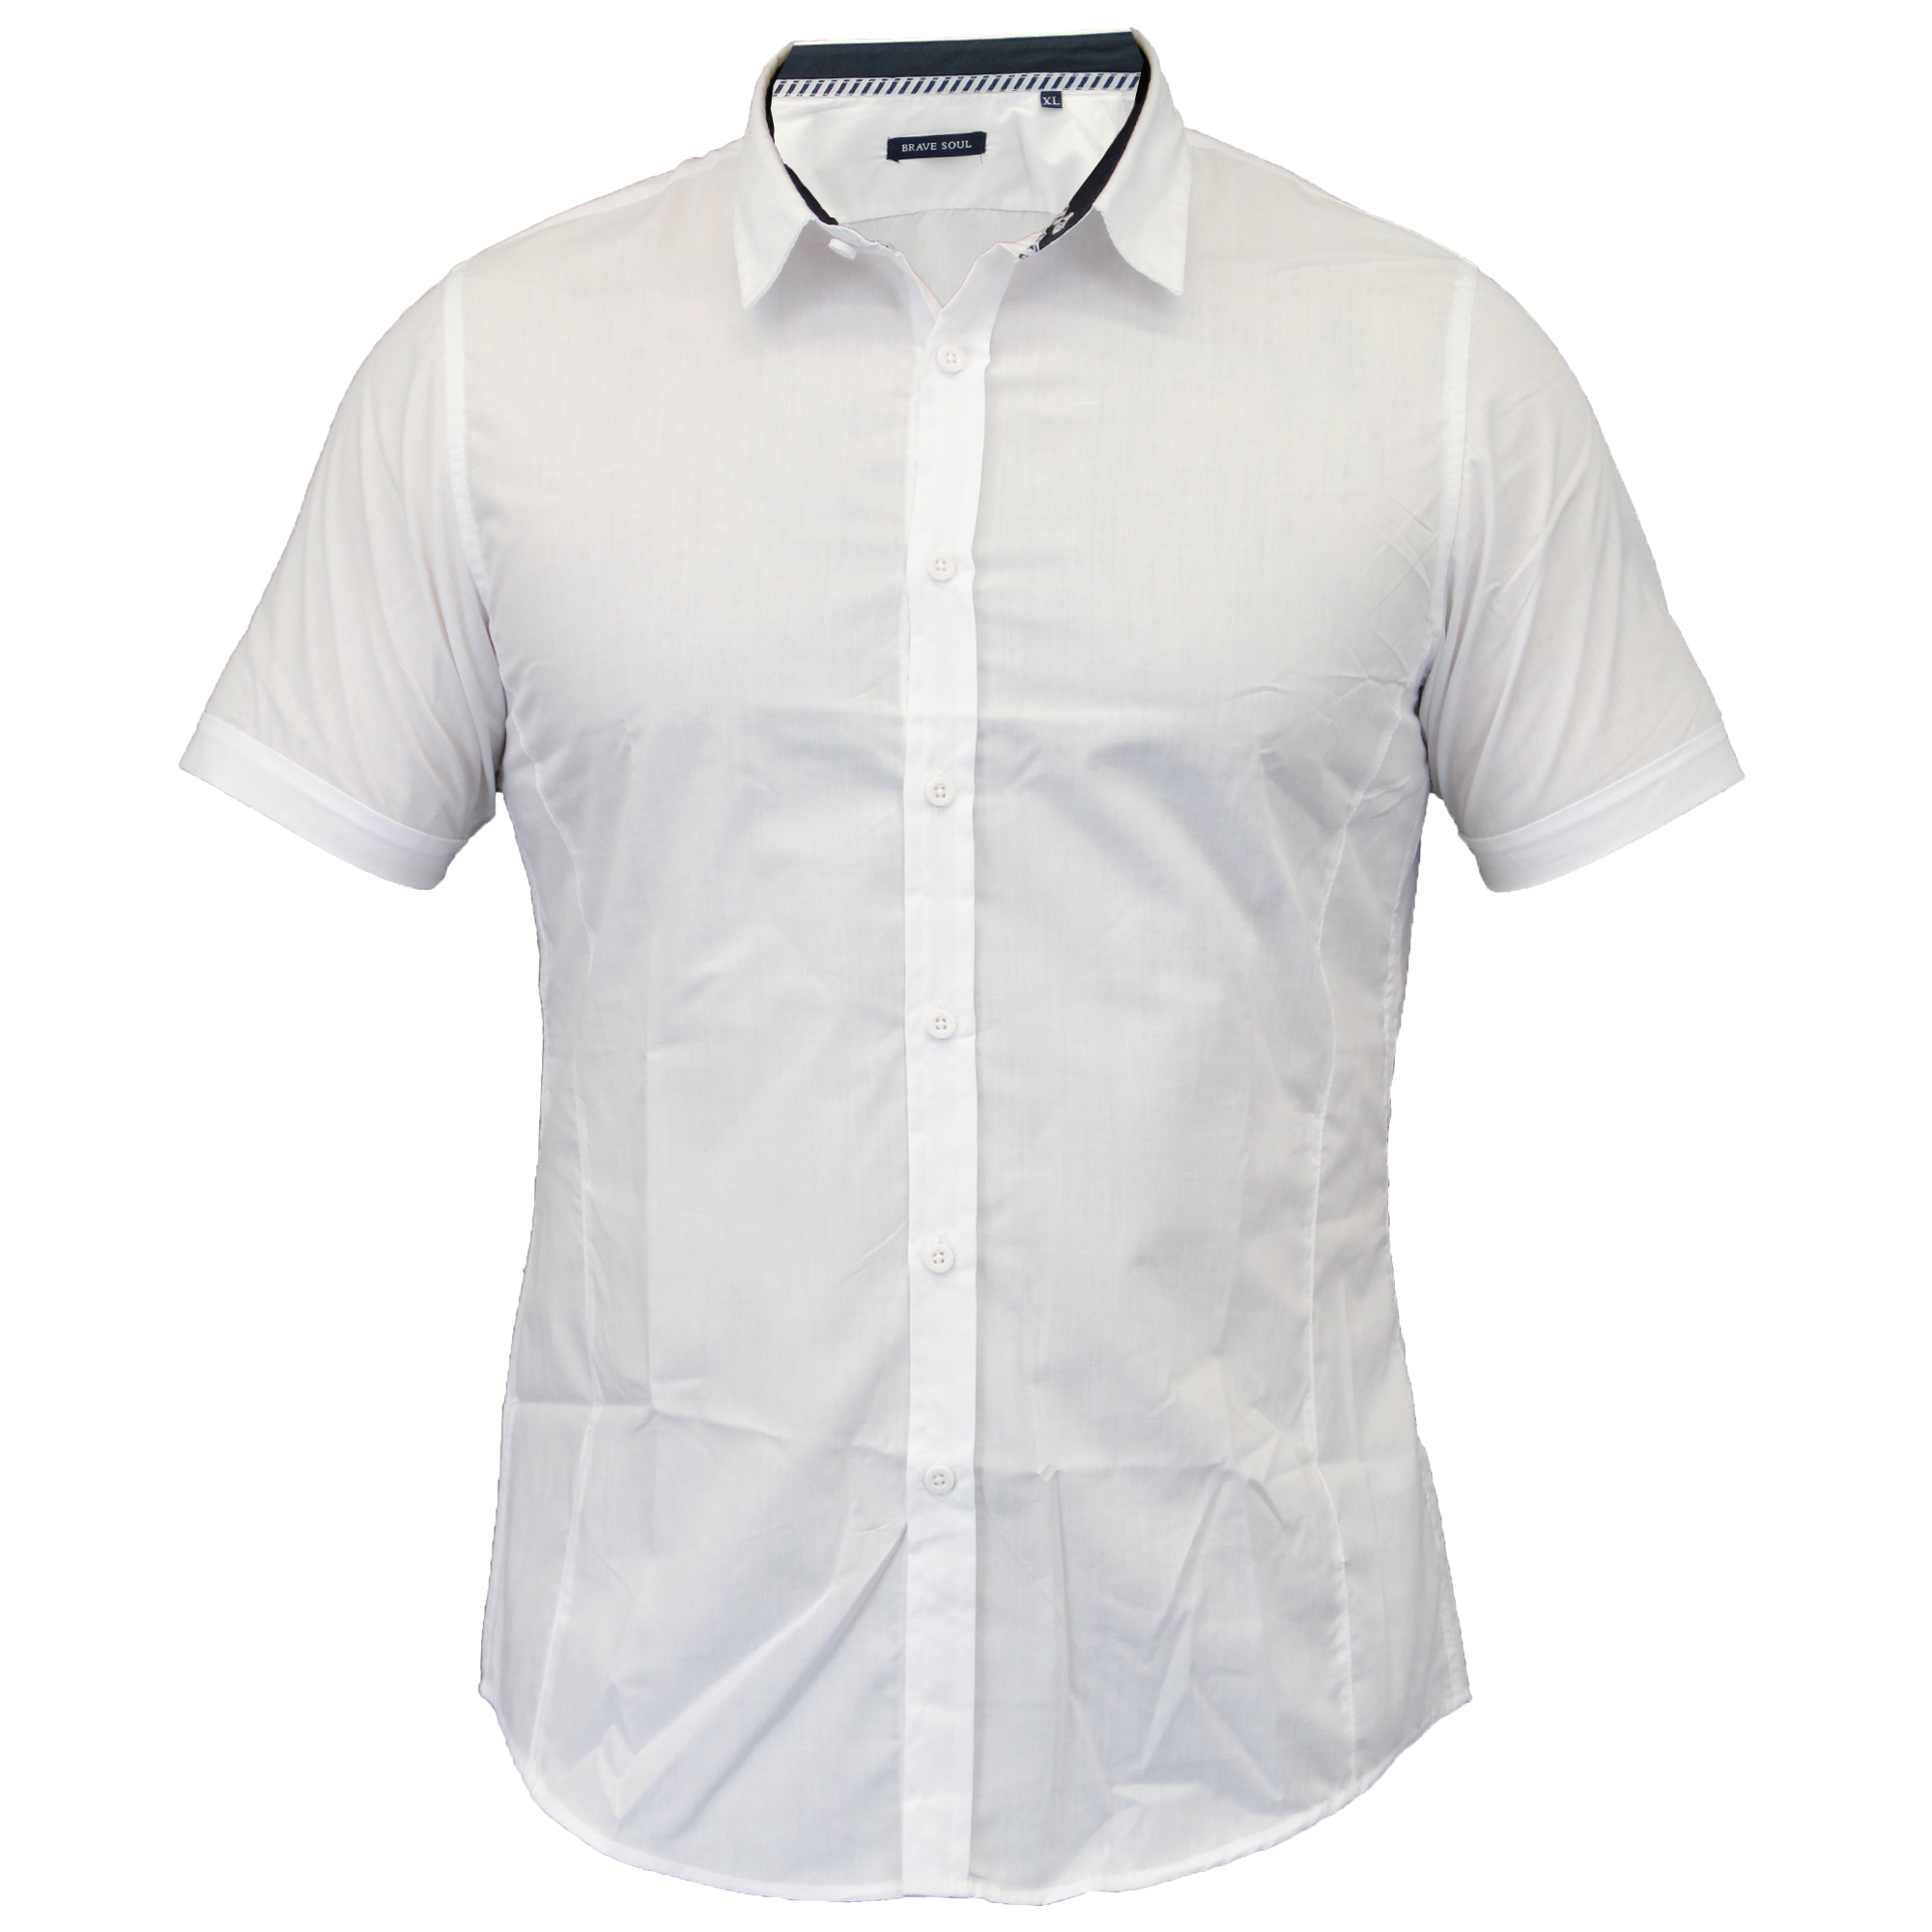 Mens-Shirts-Brave-Soul-Short-Sleeved-Slim-Fit-Mombassa-Plain-Collared-Summer-New thumbnail 16